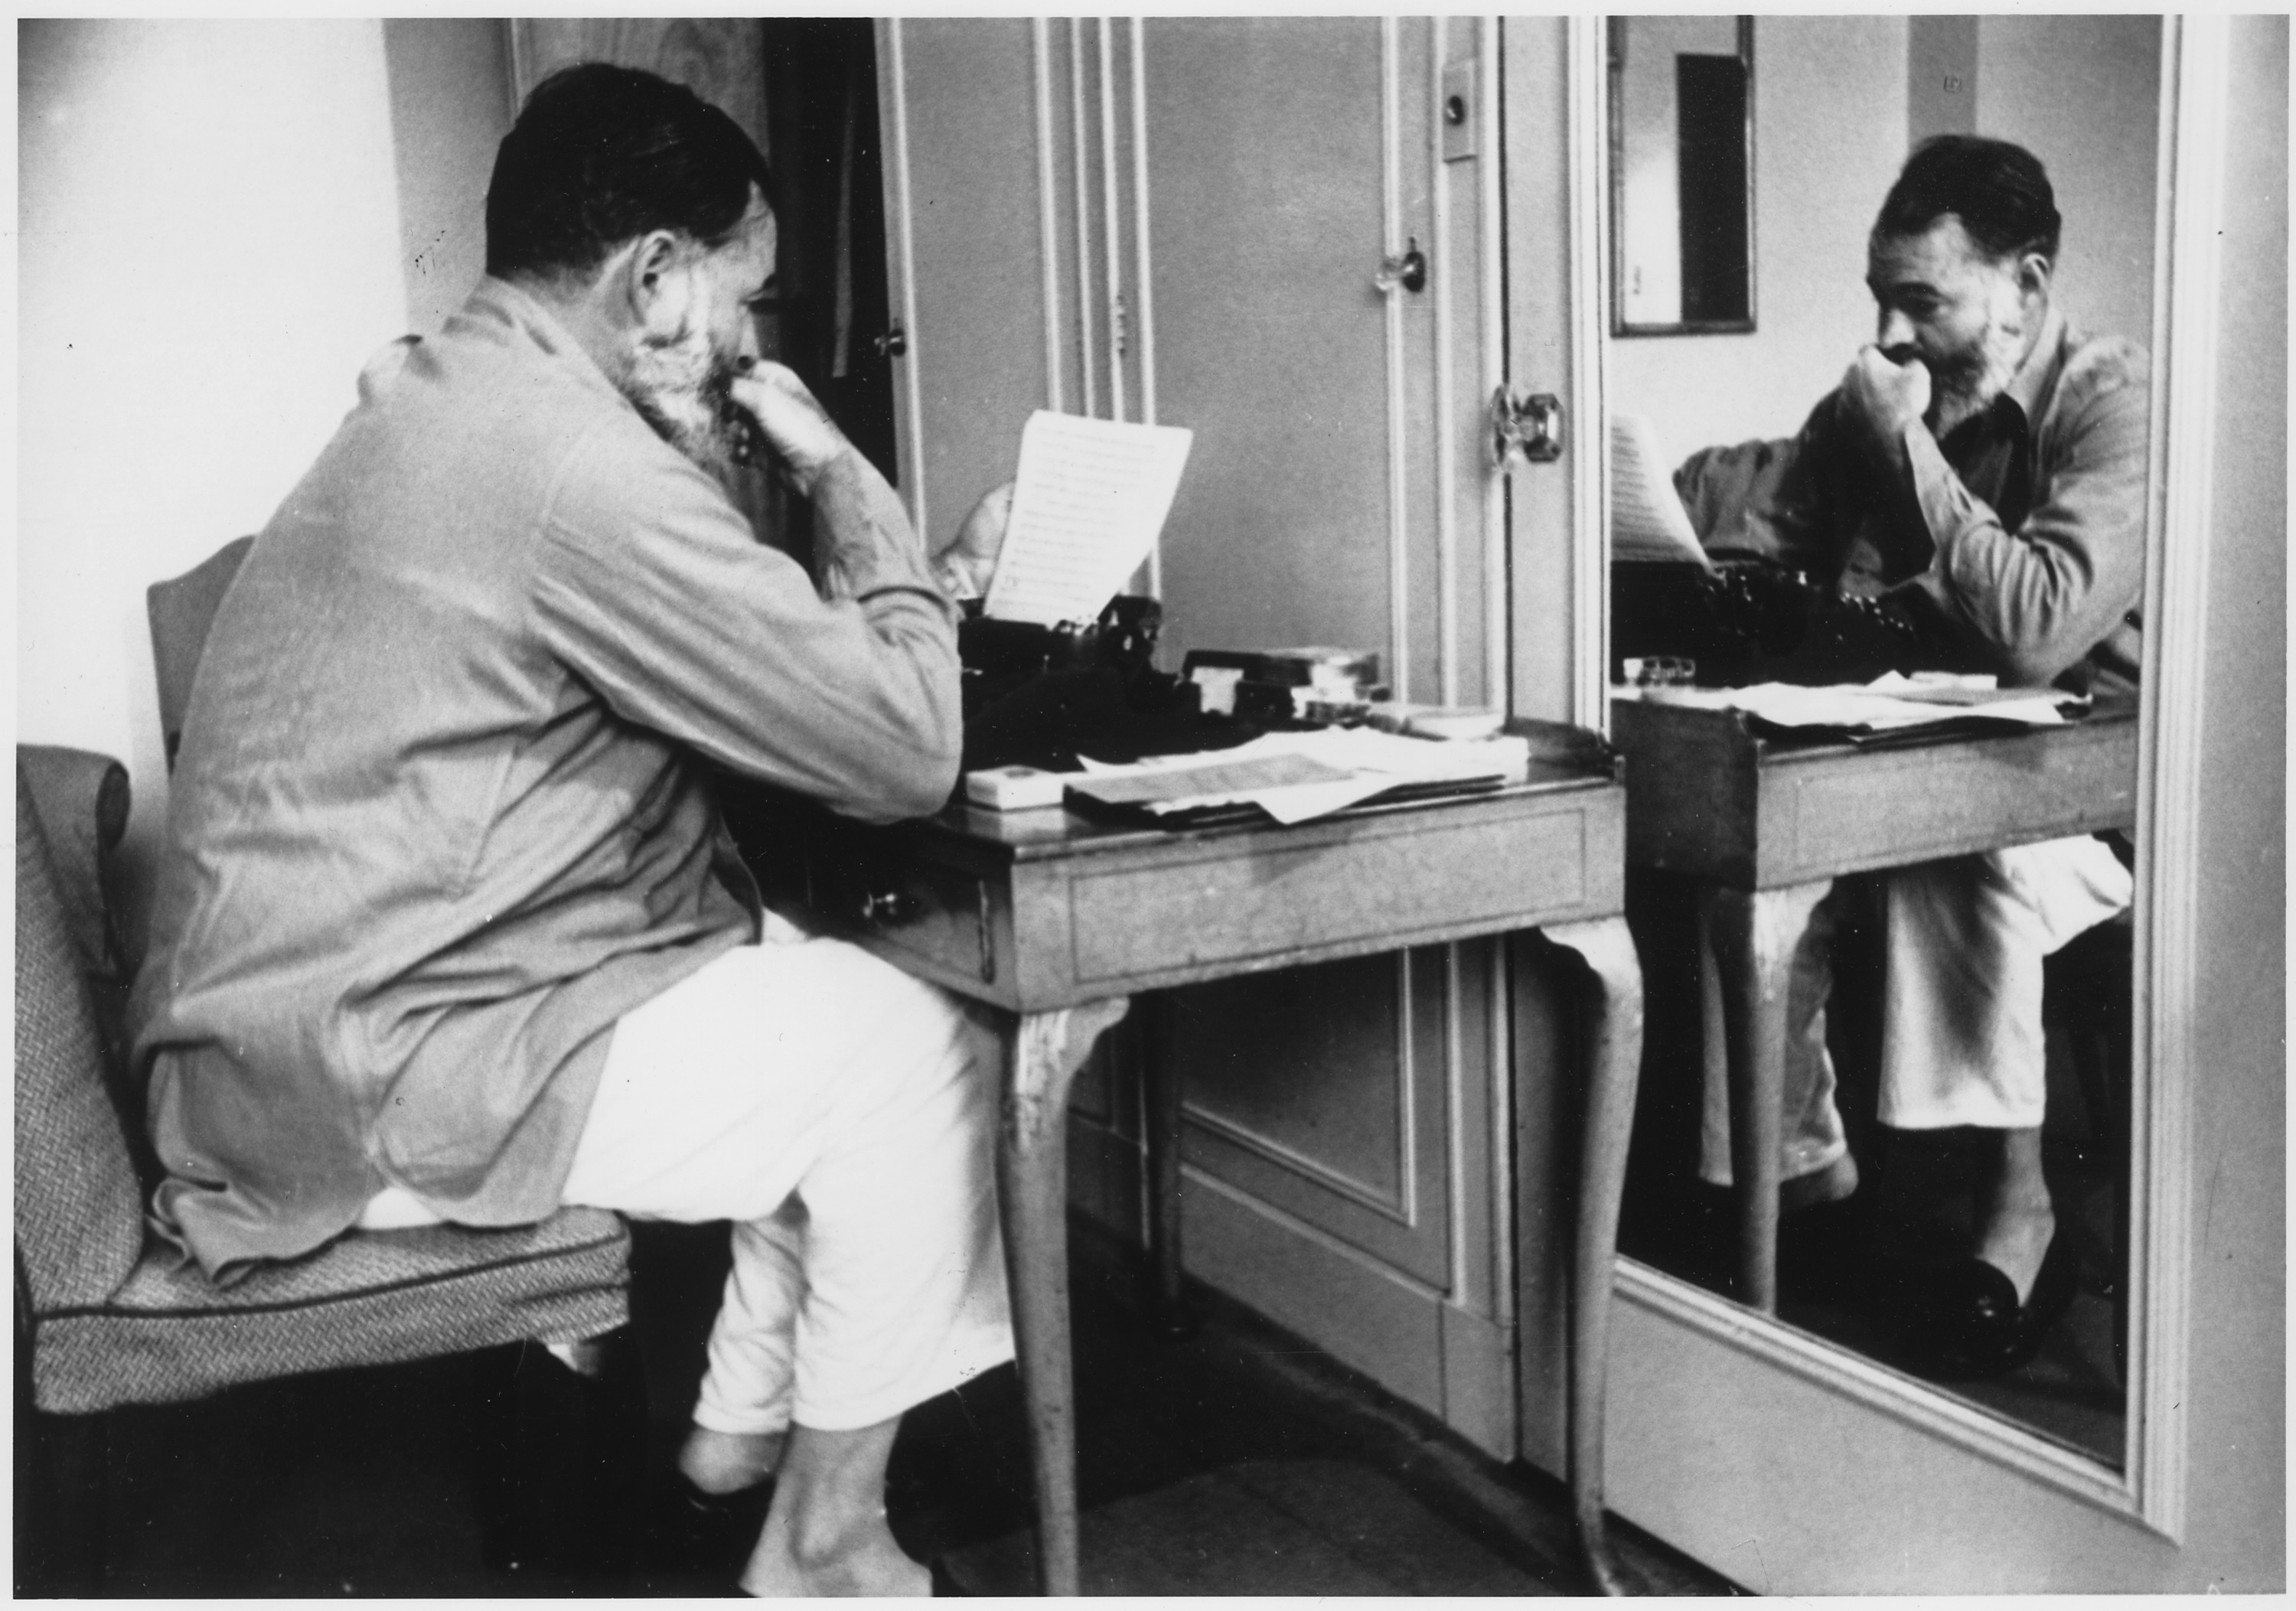 Black and white image of a man sitting at a desk in front of the mirror, reading something